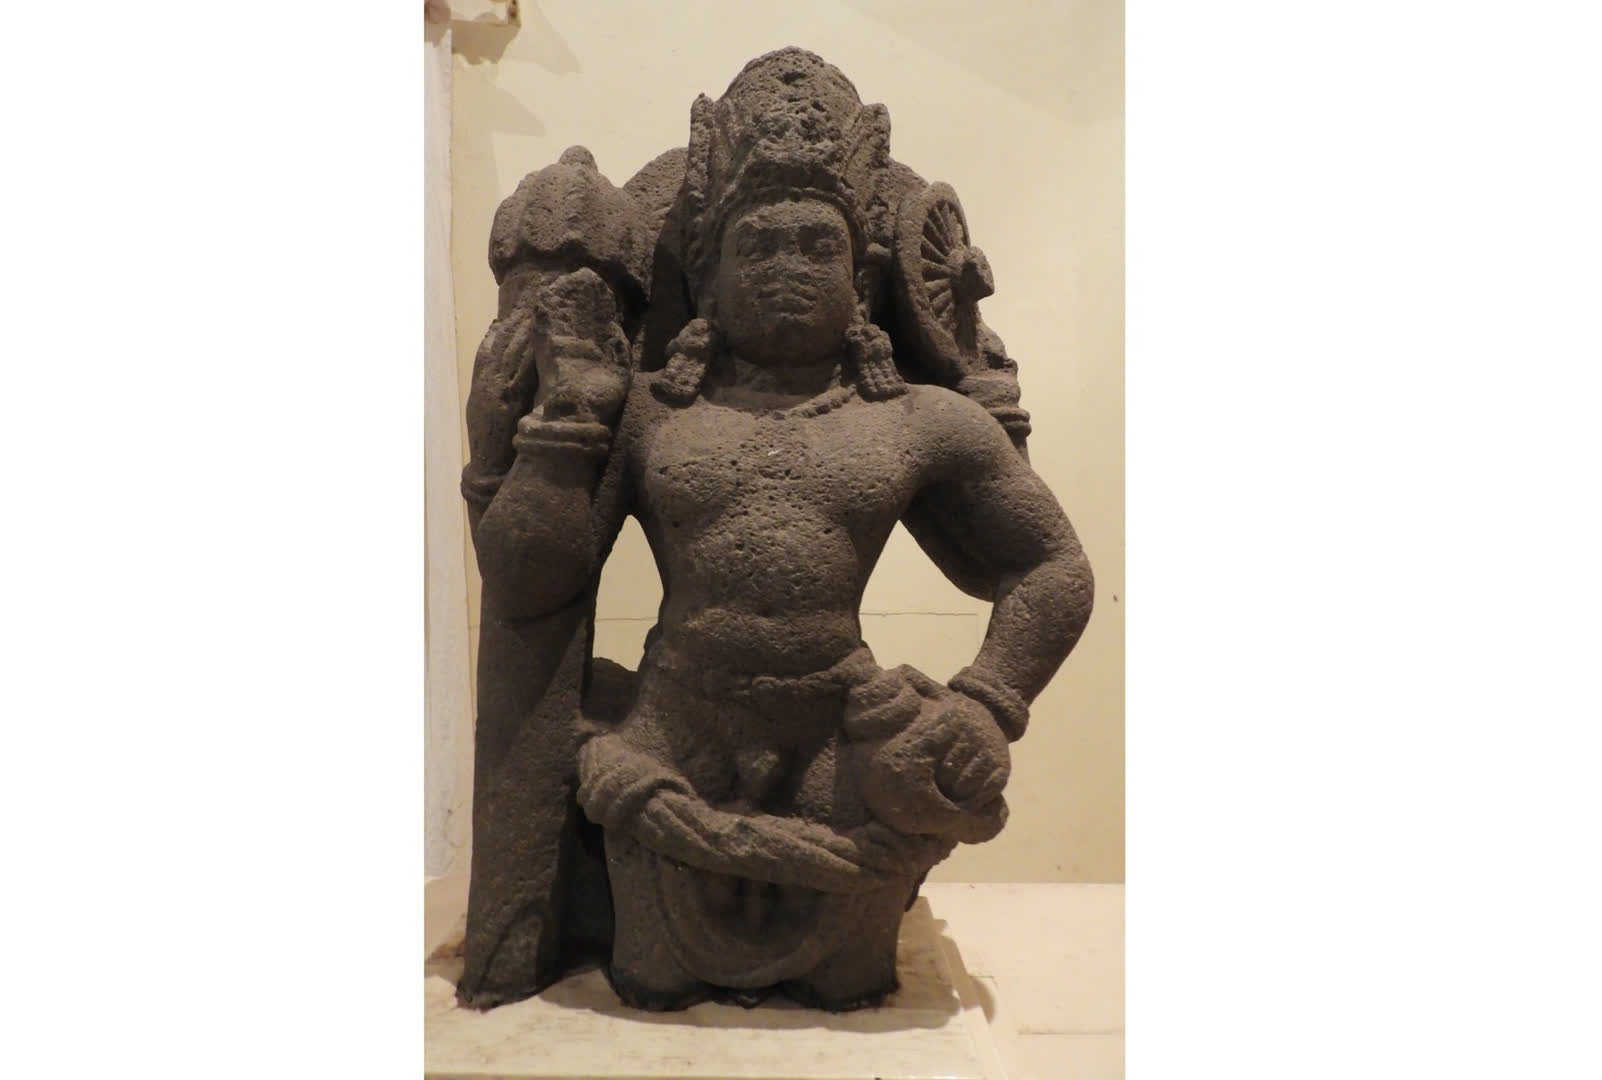 Sculpture of Vishnu | Directorate of Archaeology and Museums, Govt of Maharashtra